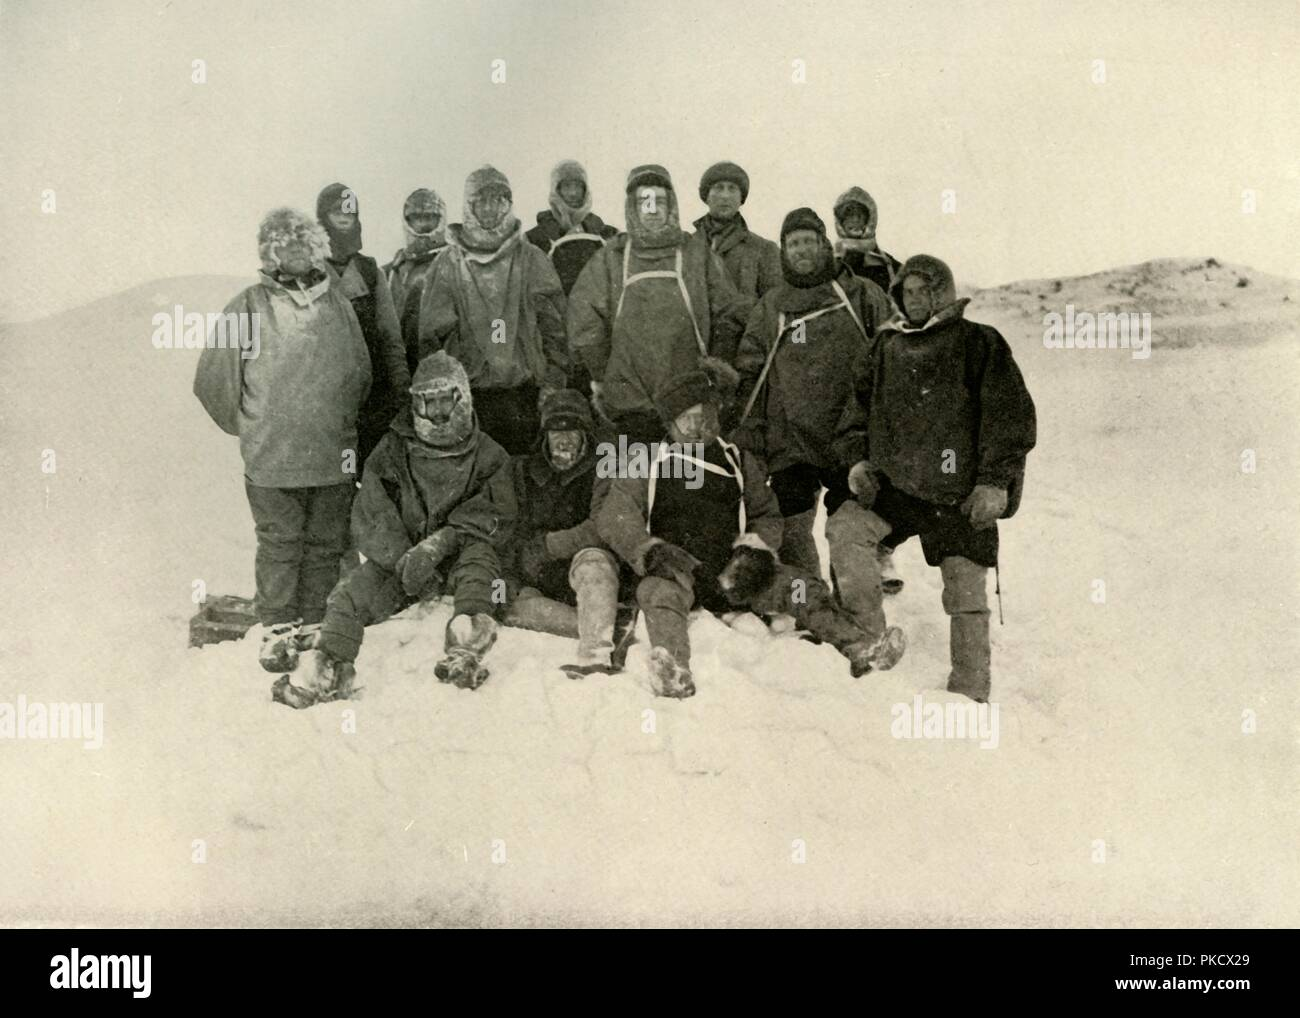 'A Group of the Shore Party at the Winter Quarters. [Standing (from left): Joyce, Day, Wild, Adams, Brocklehurst, Shackleton, Marshall, David, Armitage, Marston. Sitting: Priestley, Murray, Roberts]', c1908, (1909). Anglo-Irish explorer Ernest Shackleton (1874-1922) made three expeditions to the Antarctic. During the second expedition, 1907-1909, he and three companions established a new record, Farthest South latitude at 88°S, only 97 geographical miles (112 statute miles, or 180 km) from the South Pole, the largest advance to the pole in exploration history. Members of his team also cli - Stock Image